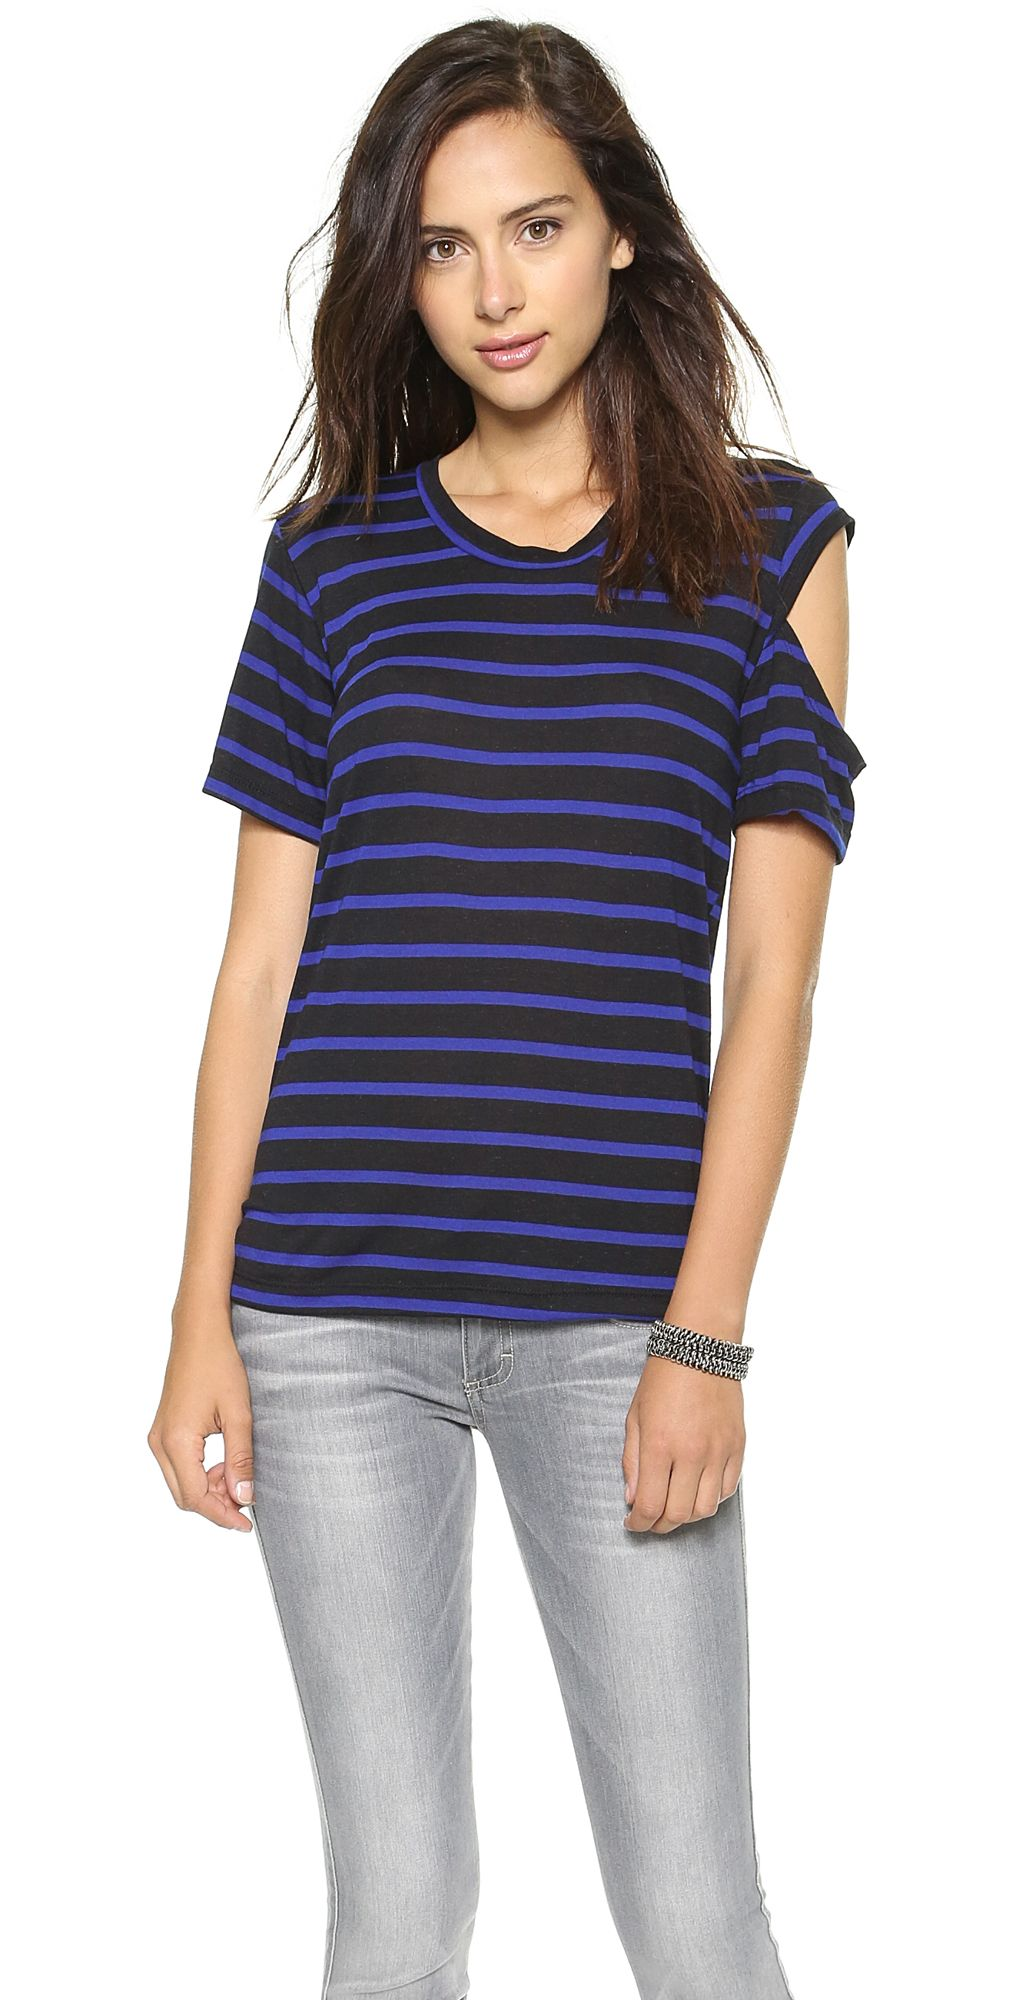 0e29d7c6a8 Striped Tee | Threads | Striped tee, Tops, Tees